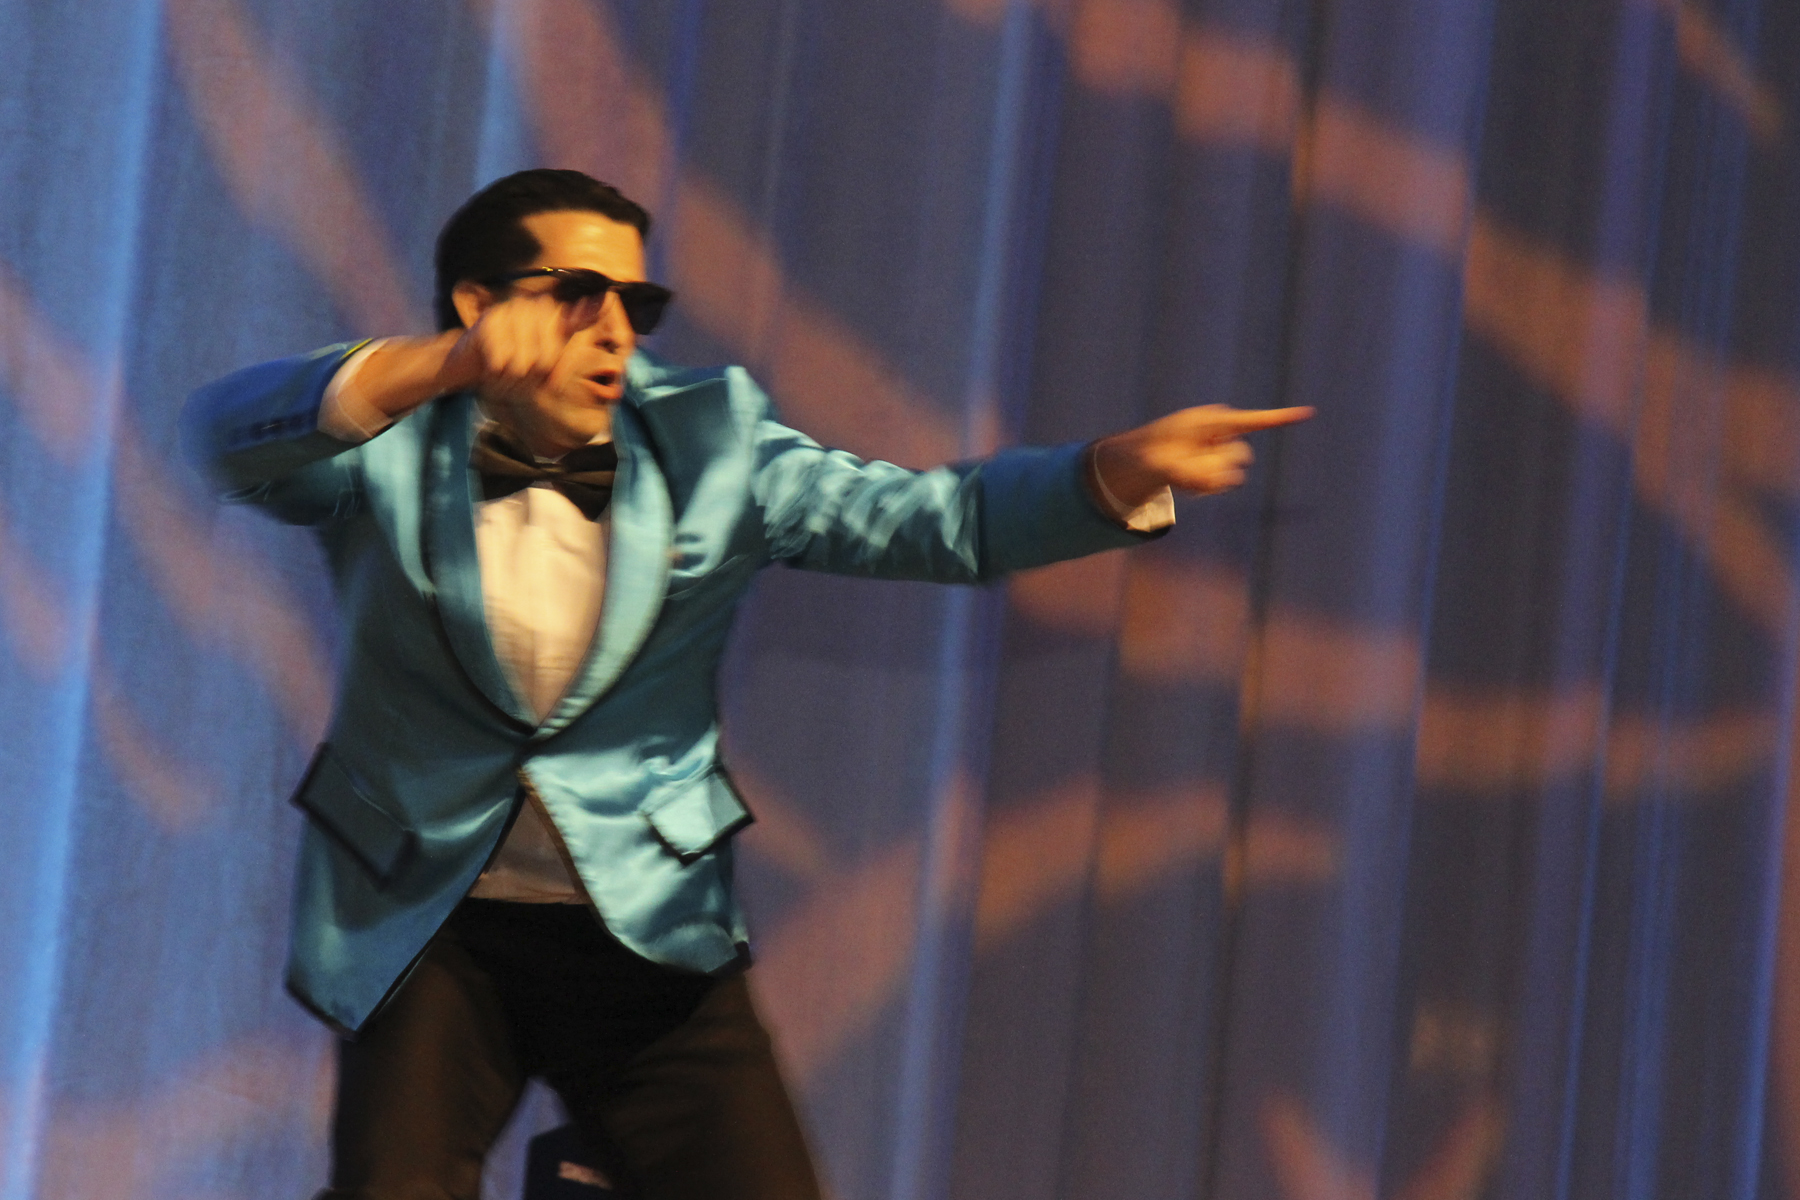 """2016 AN EVENING AROUND THE WORLD: CFS Gangnam Style Dancer Tony Mizuno (Bank of Hawaii) shows off his """"PSY"""" moves!"""